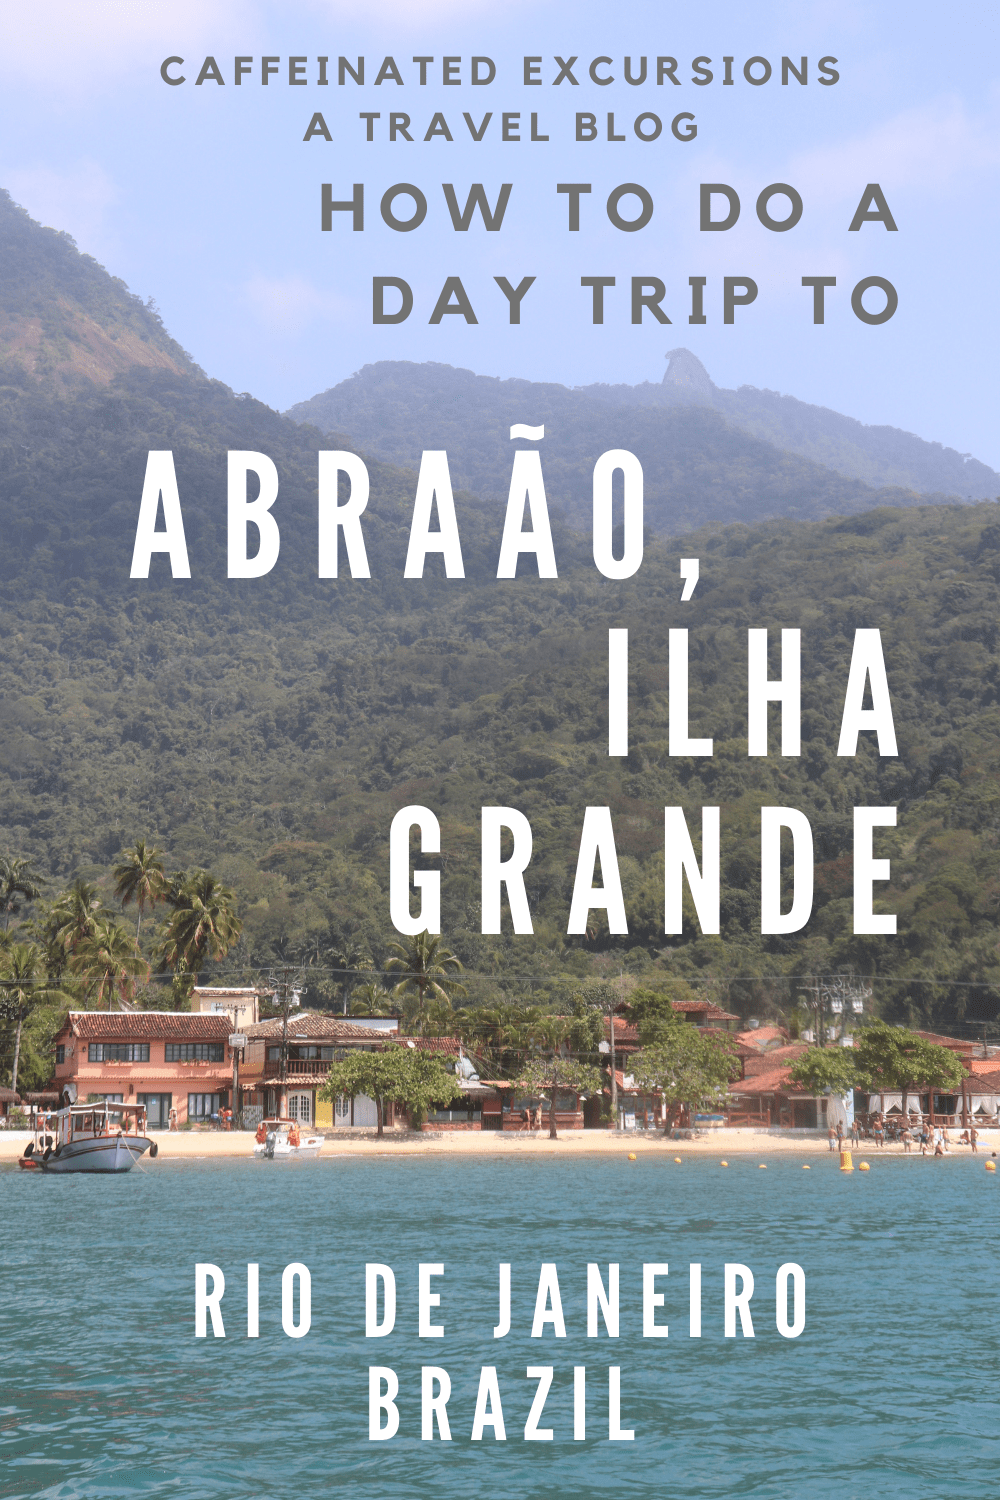 This blog post will explain how you can visit the famous Brazilian destination of Ilha Grande in just one day! Because this island is located between São Paulo and Rio de Janeiro, it's the perfect place to stop if you're traveling between the two cities! #ilhagrande #abraao #abraão #abraãoilhagrande #ilhagrandeabraão #angradosreis #angra #angrarj #angradosreisrj #abraãorj #ilhagranderj #angradosreisilhagrande #ilhagrandeangradosreis #riodejaneiro #brazil #rio #riodejaneirobrasil #brasil